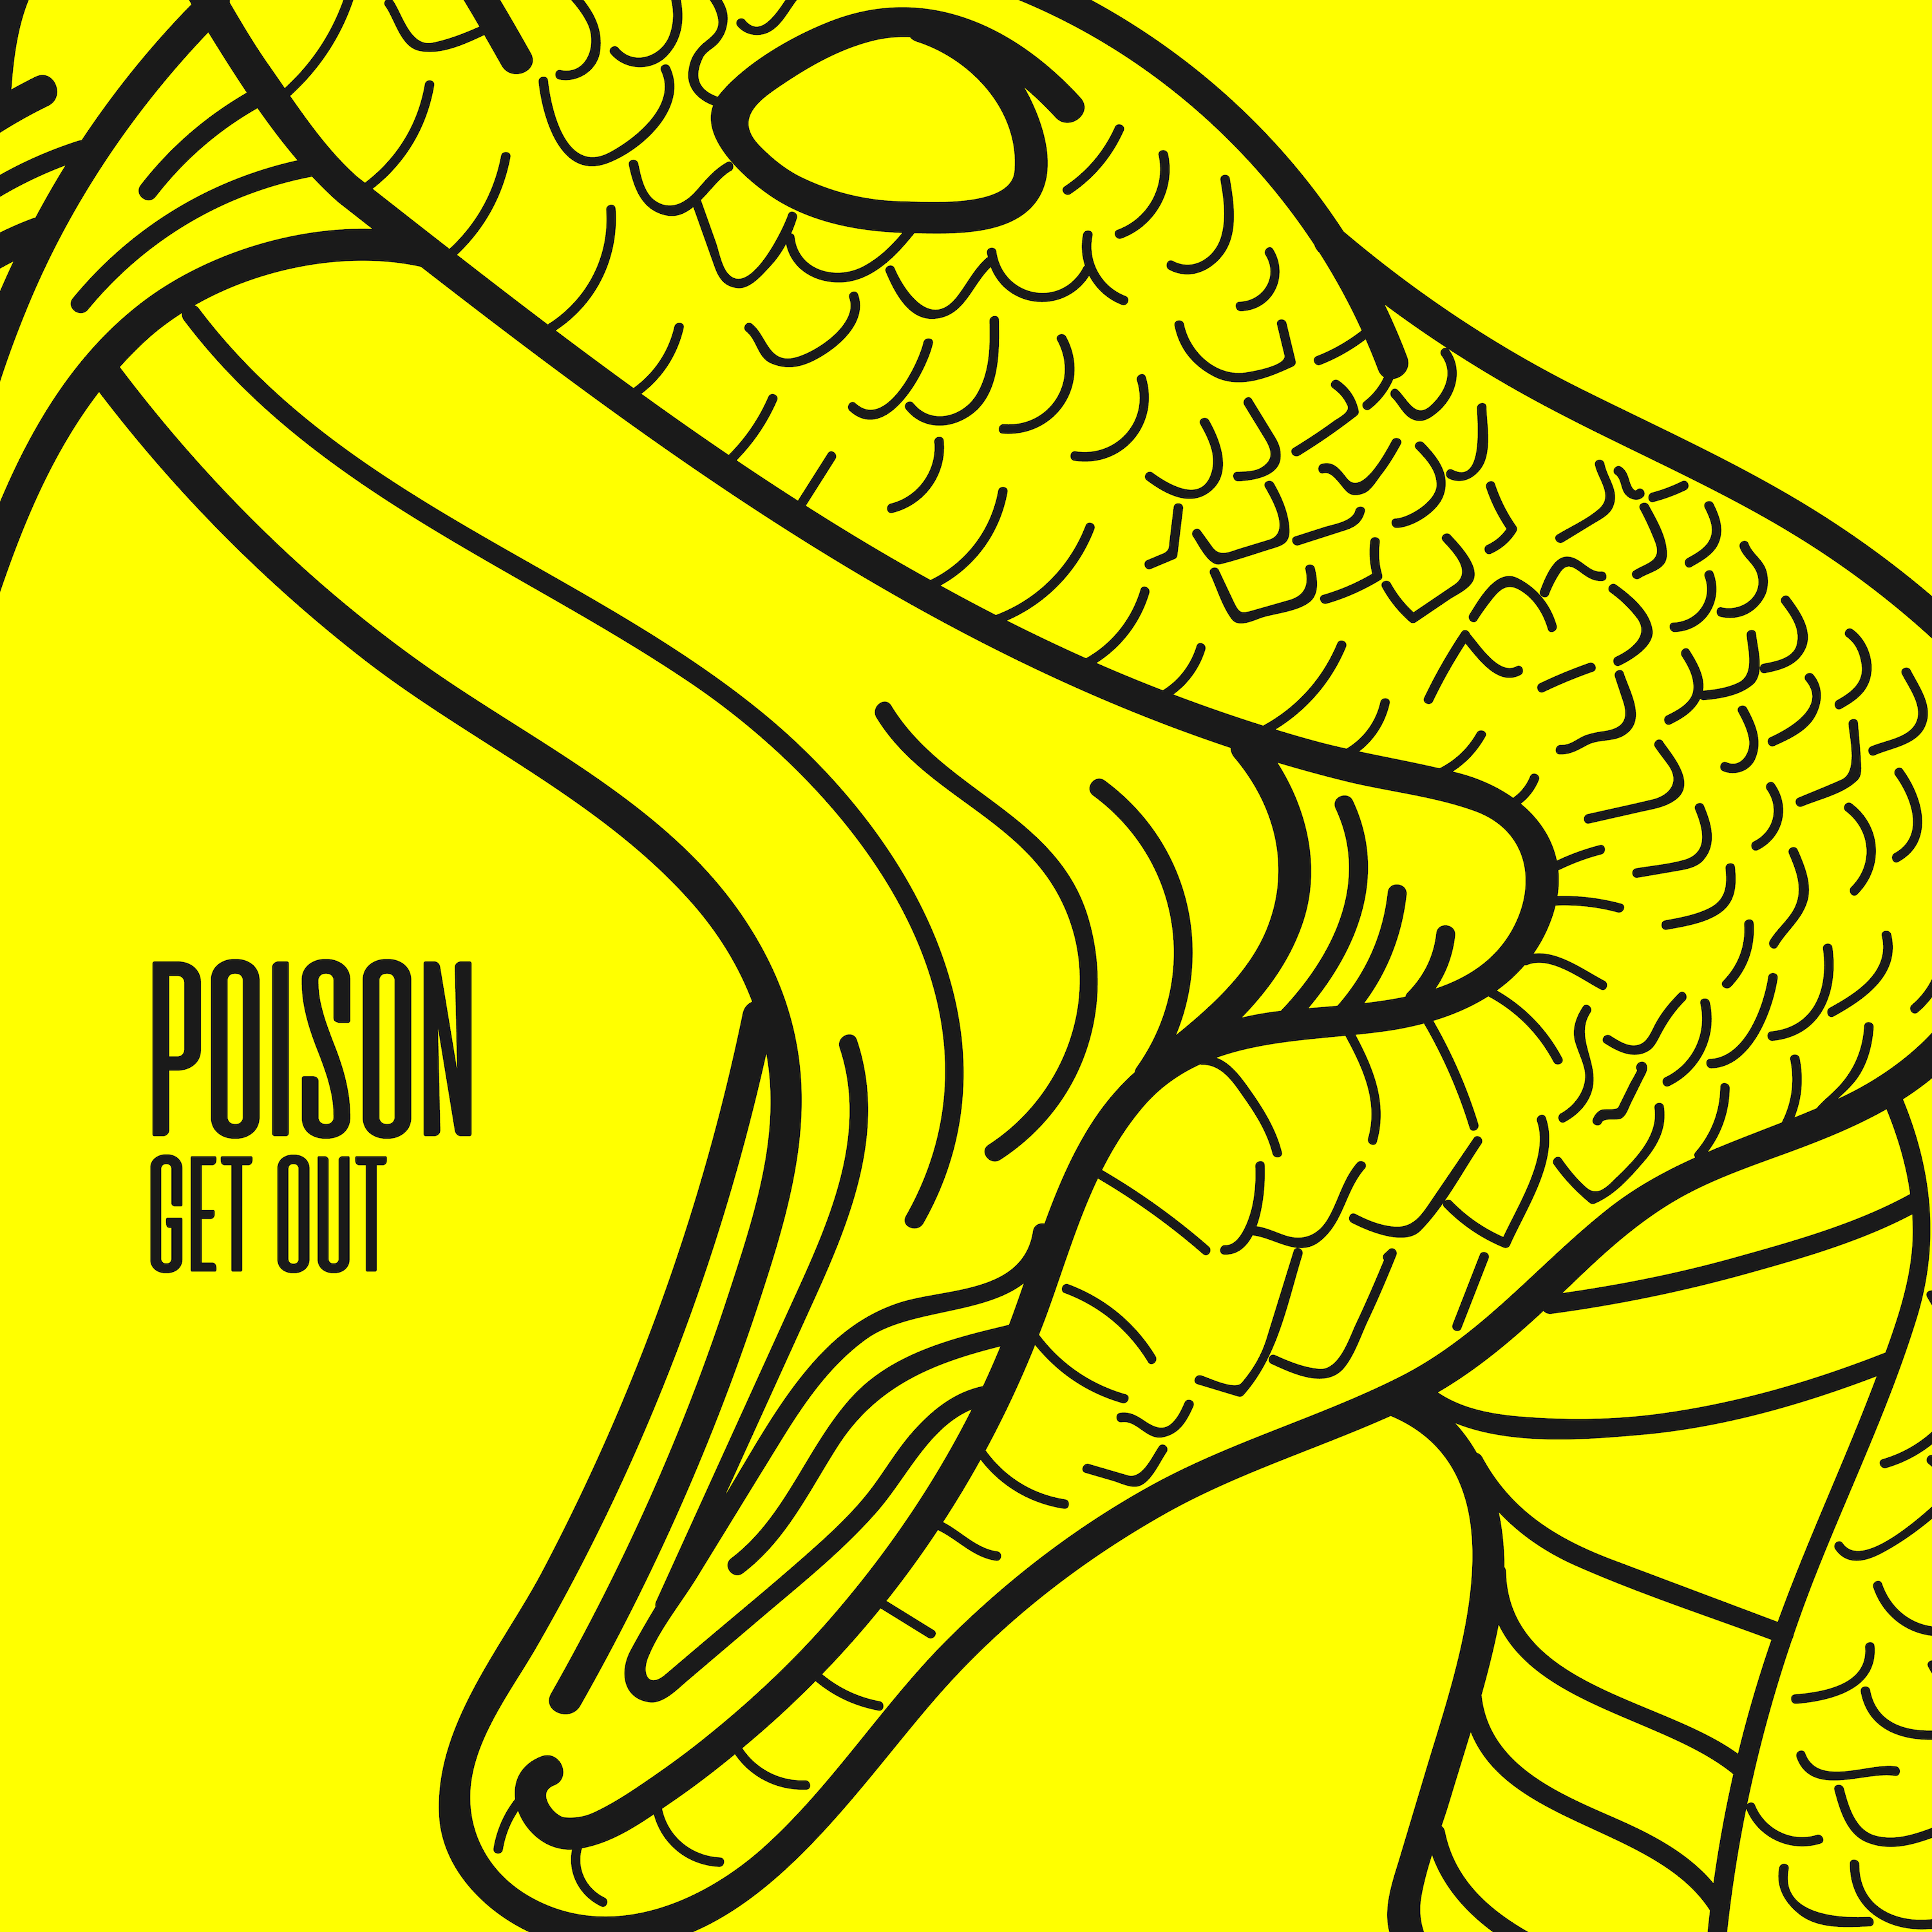 Get Out di Poison